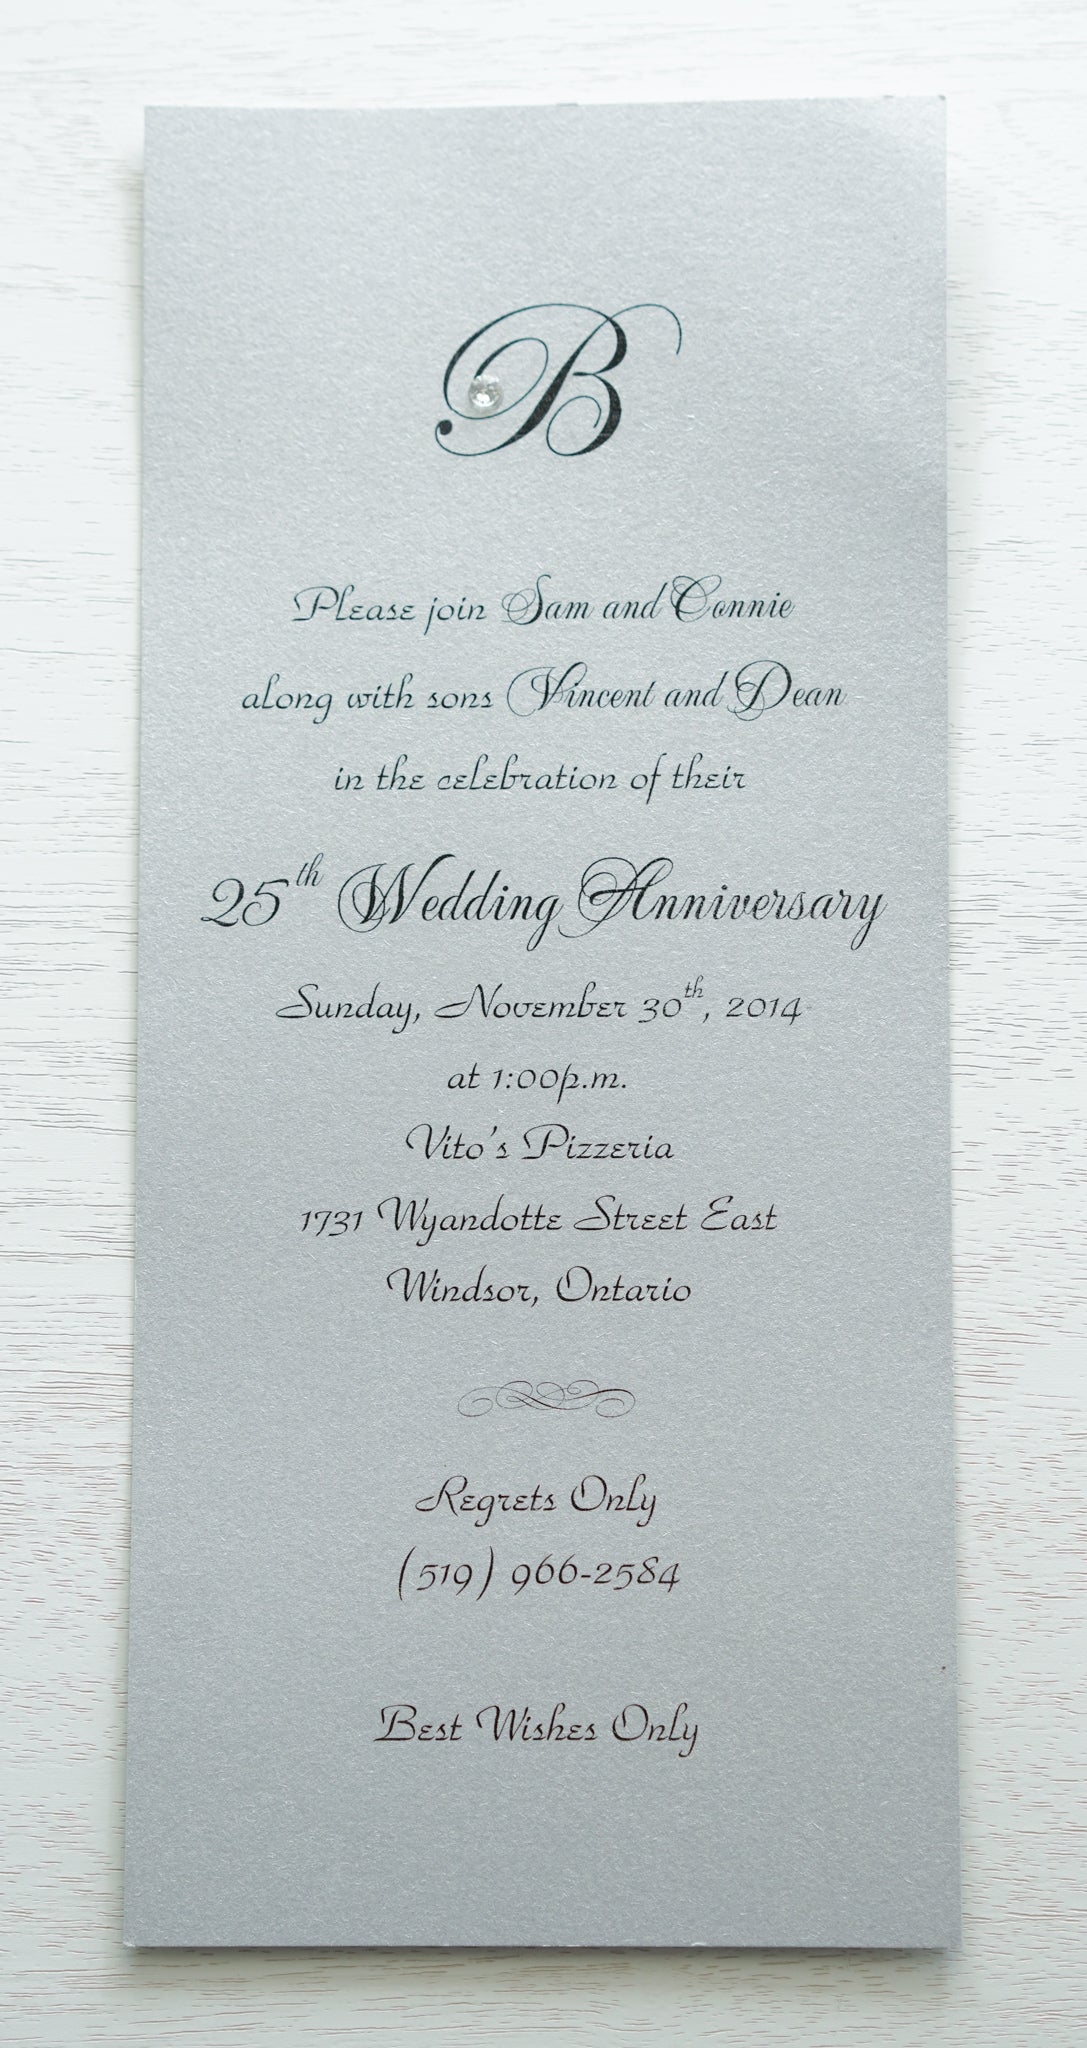 "alt=""Simplistic 25th Wedding Anniversary invitation features a silver pearlescent shimmer card stock and an elegant monogram and jewel detail"""